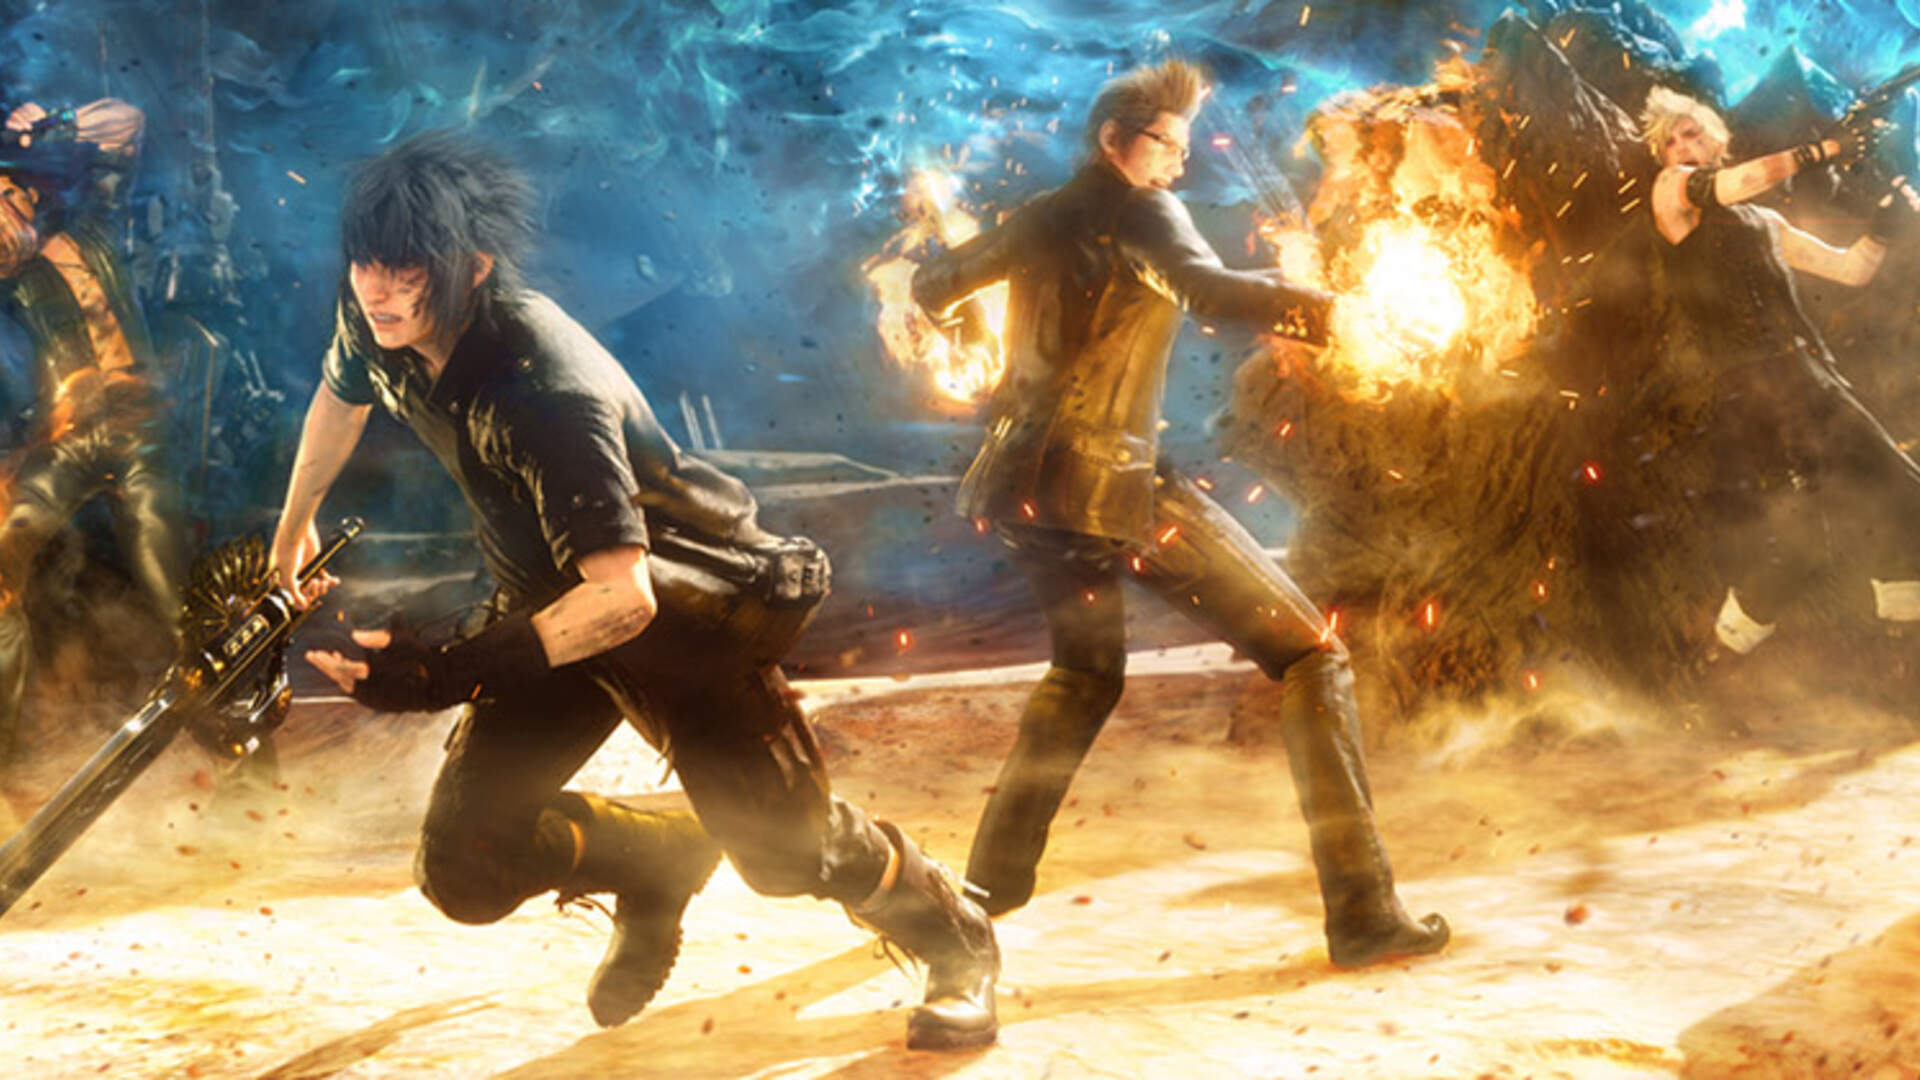 Just Cause Creator Avalanche to Pitch in on Final Fantasy XV